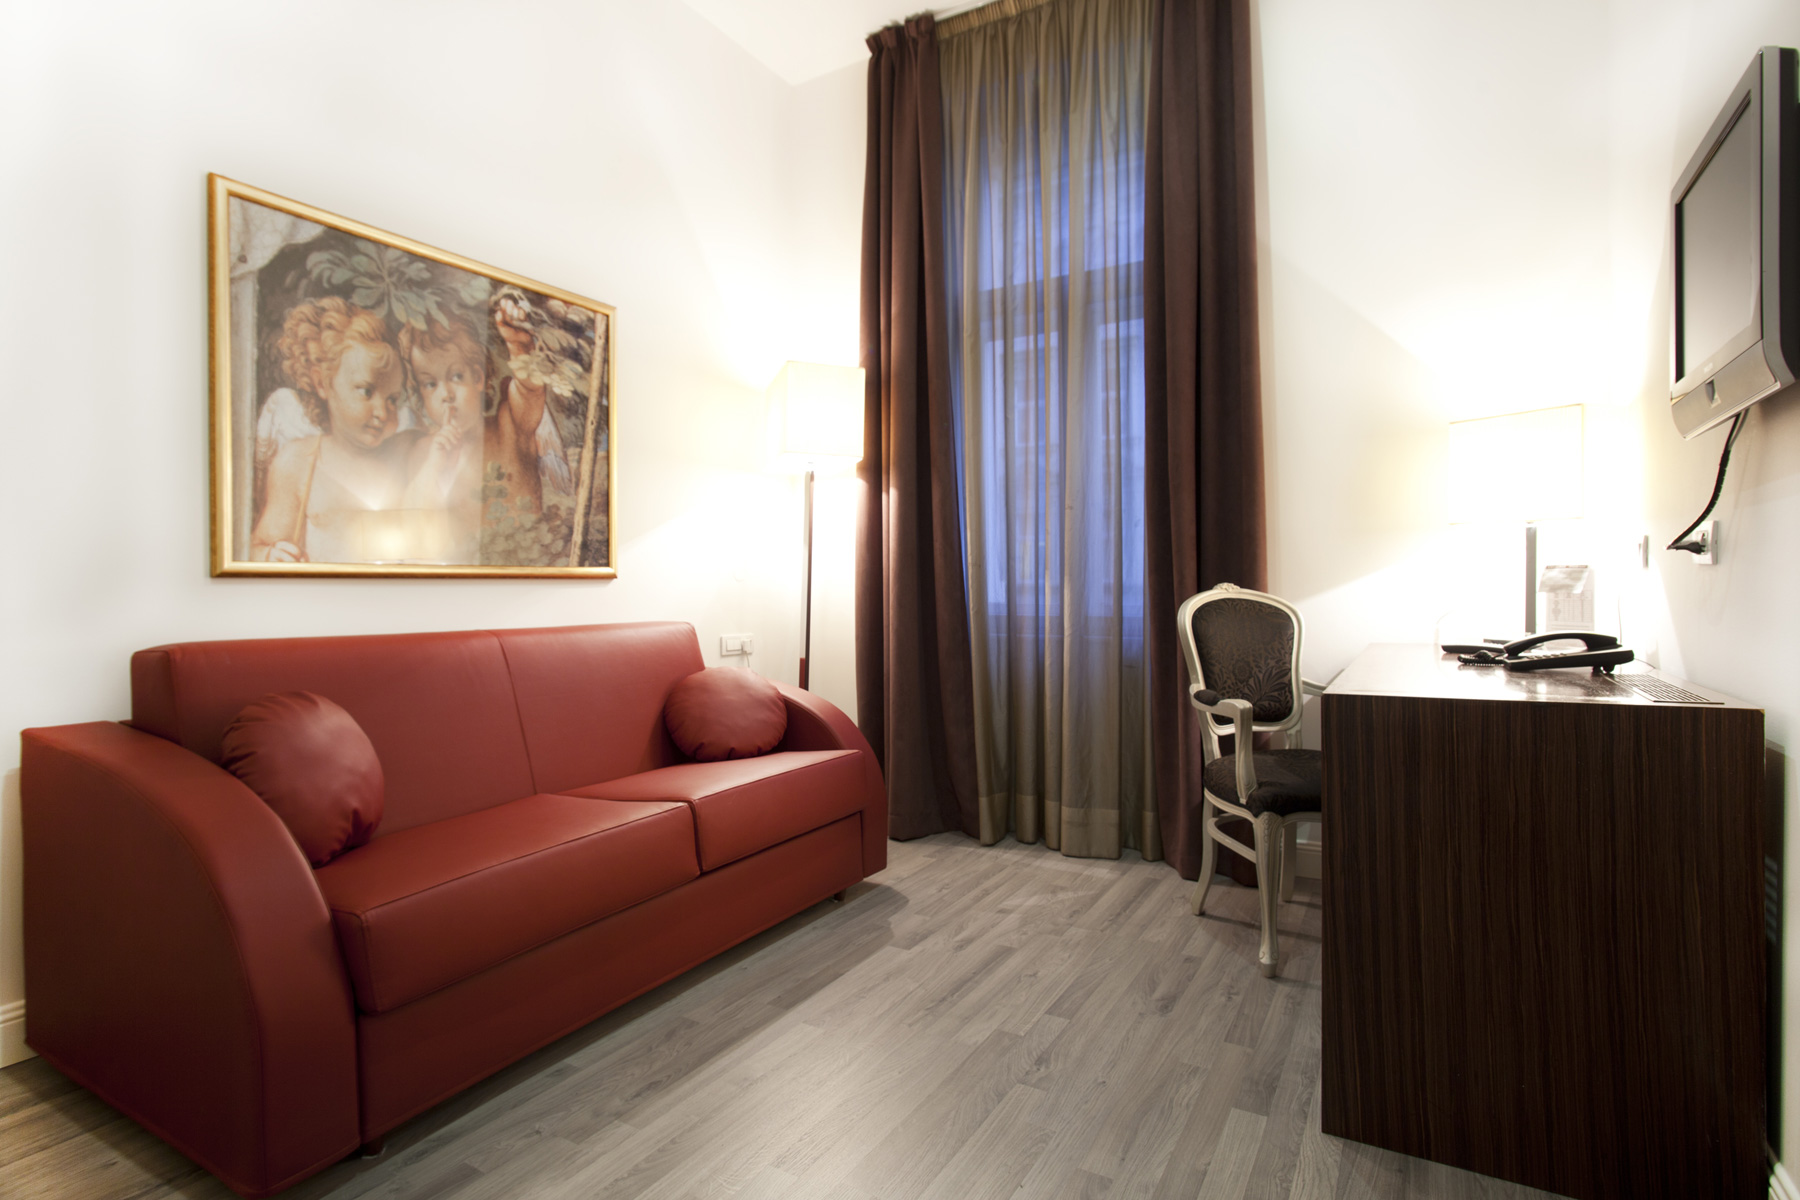 Camere suites assenzio hotel praga for Piani di suite in legge